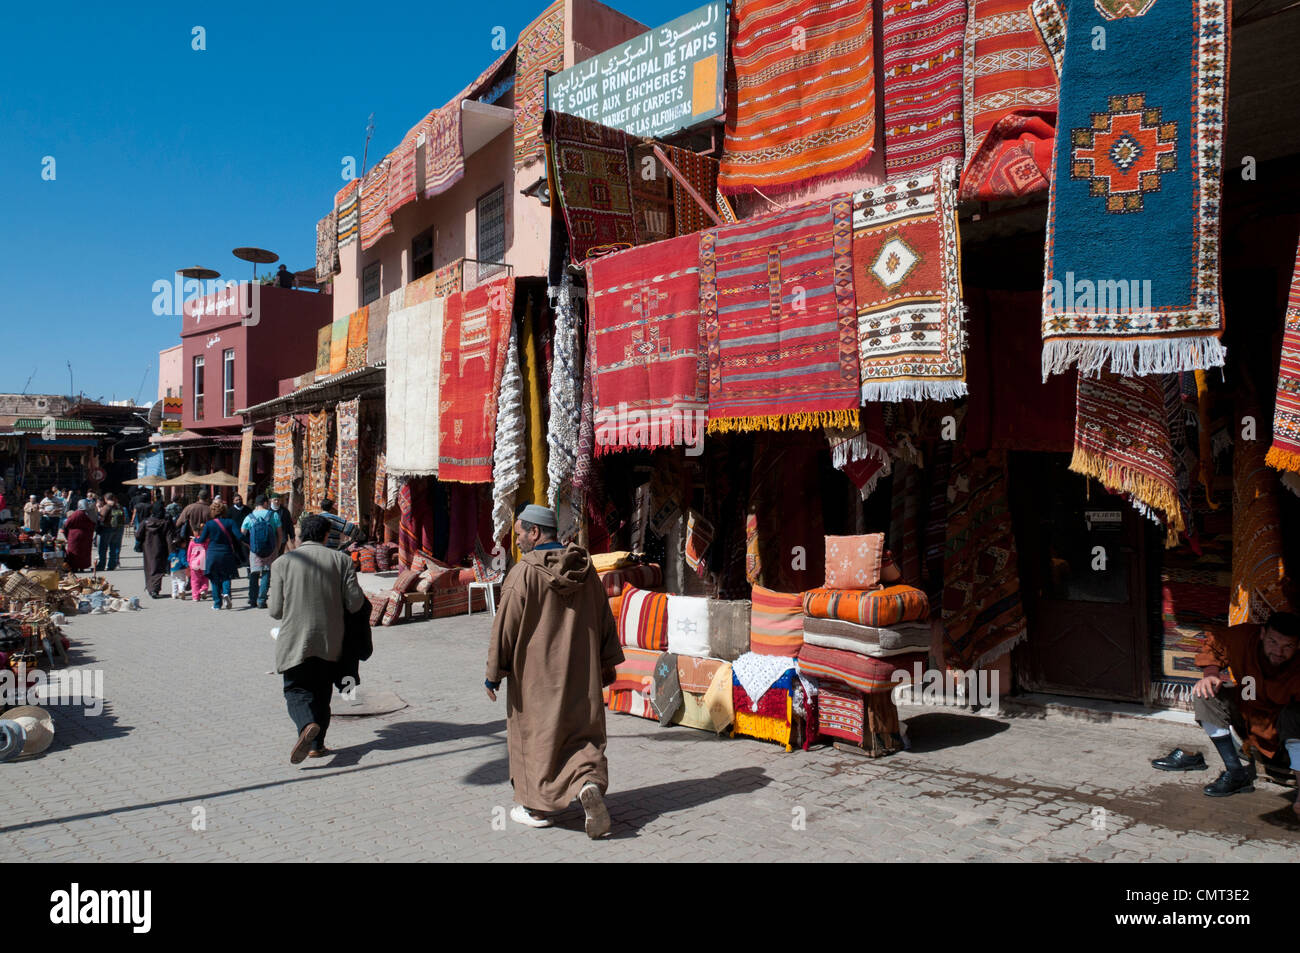 Marrakech, Morocco - Street scene in the busy souk market at Rahba Qedima in Medina district, Marrakech, North Africa - Stock Image